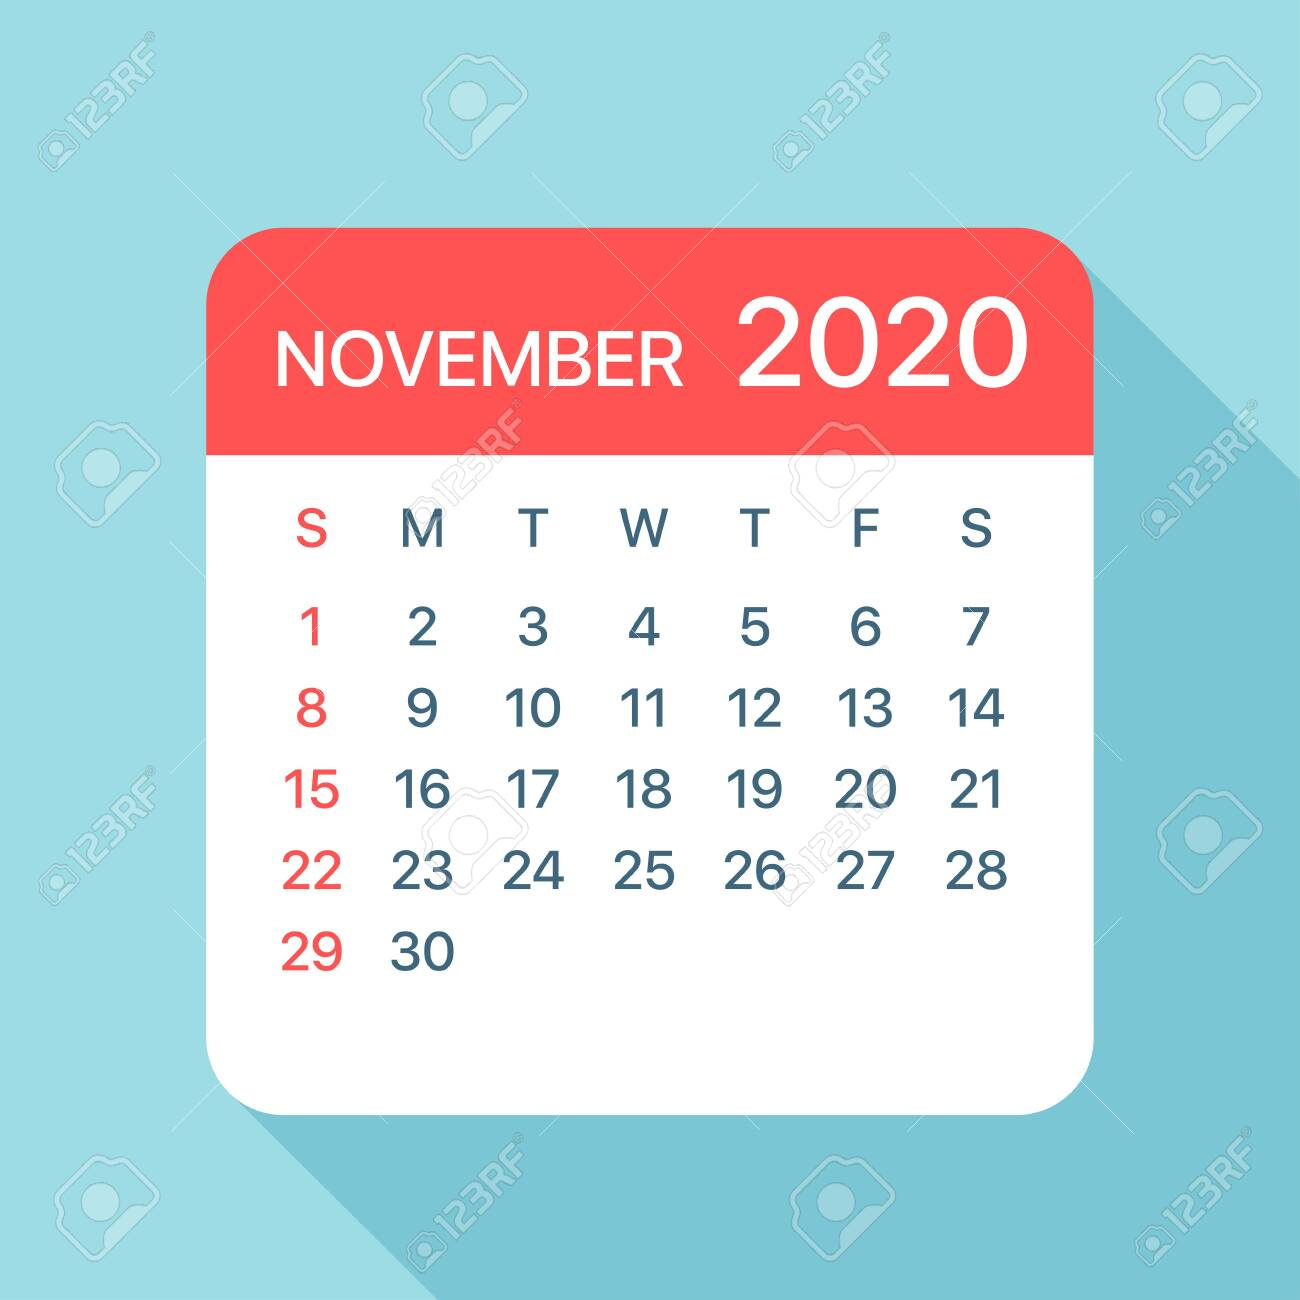 November 2020 Calendar Leaf  Illustration. Vector Graphic Page regarding November 2020 Clipart